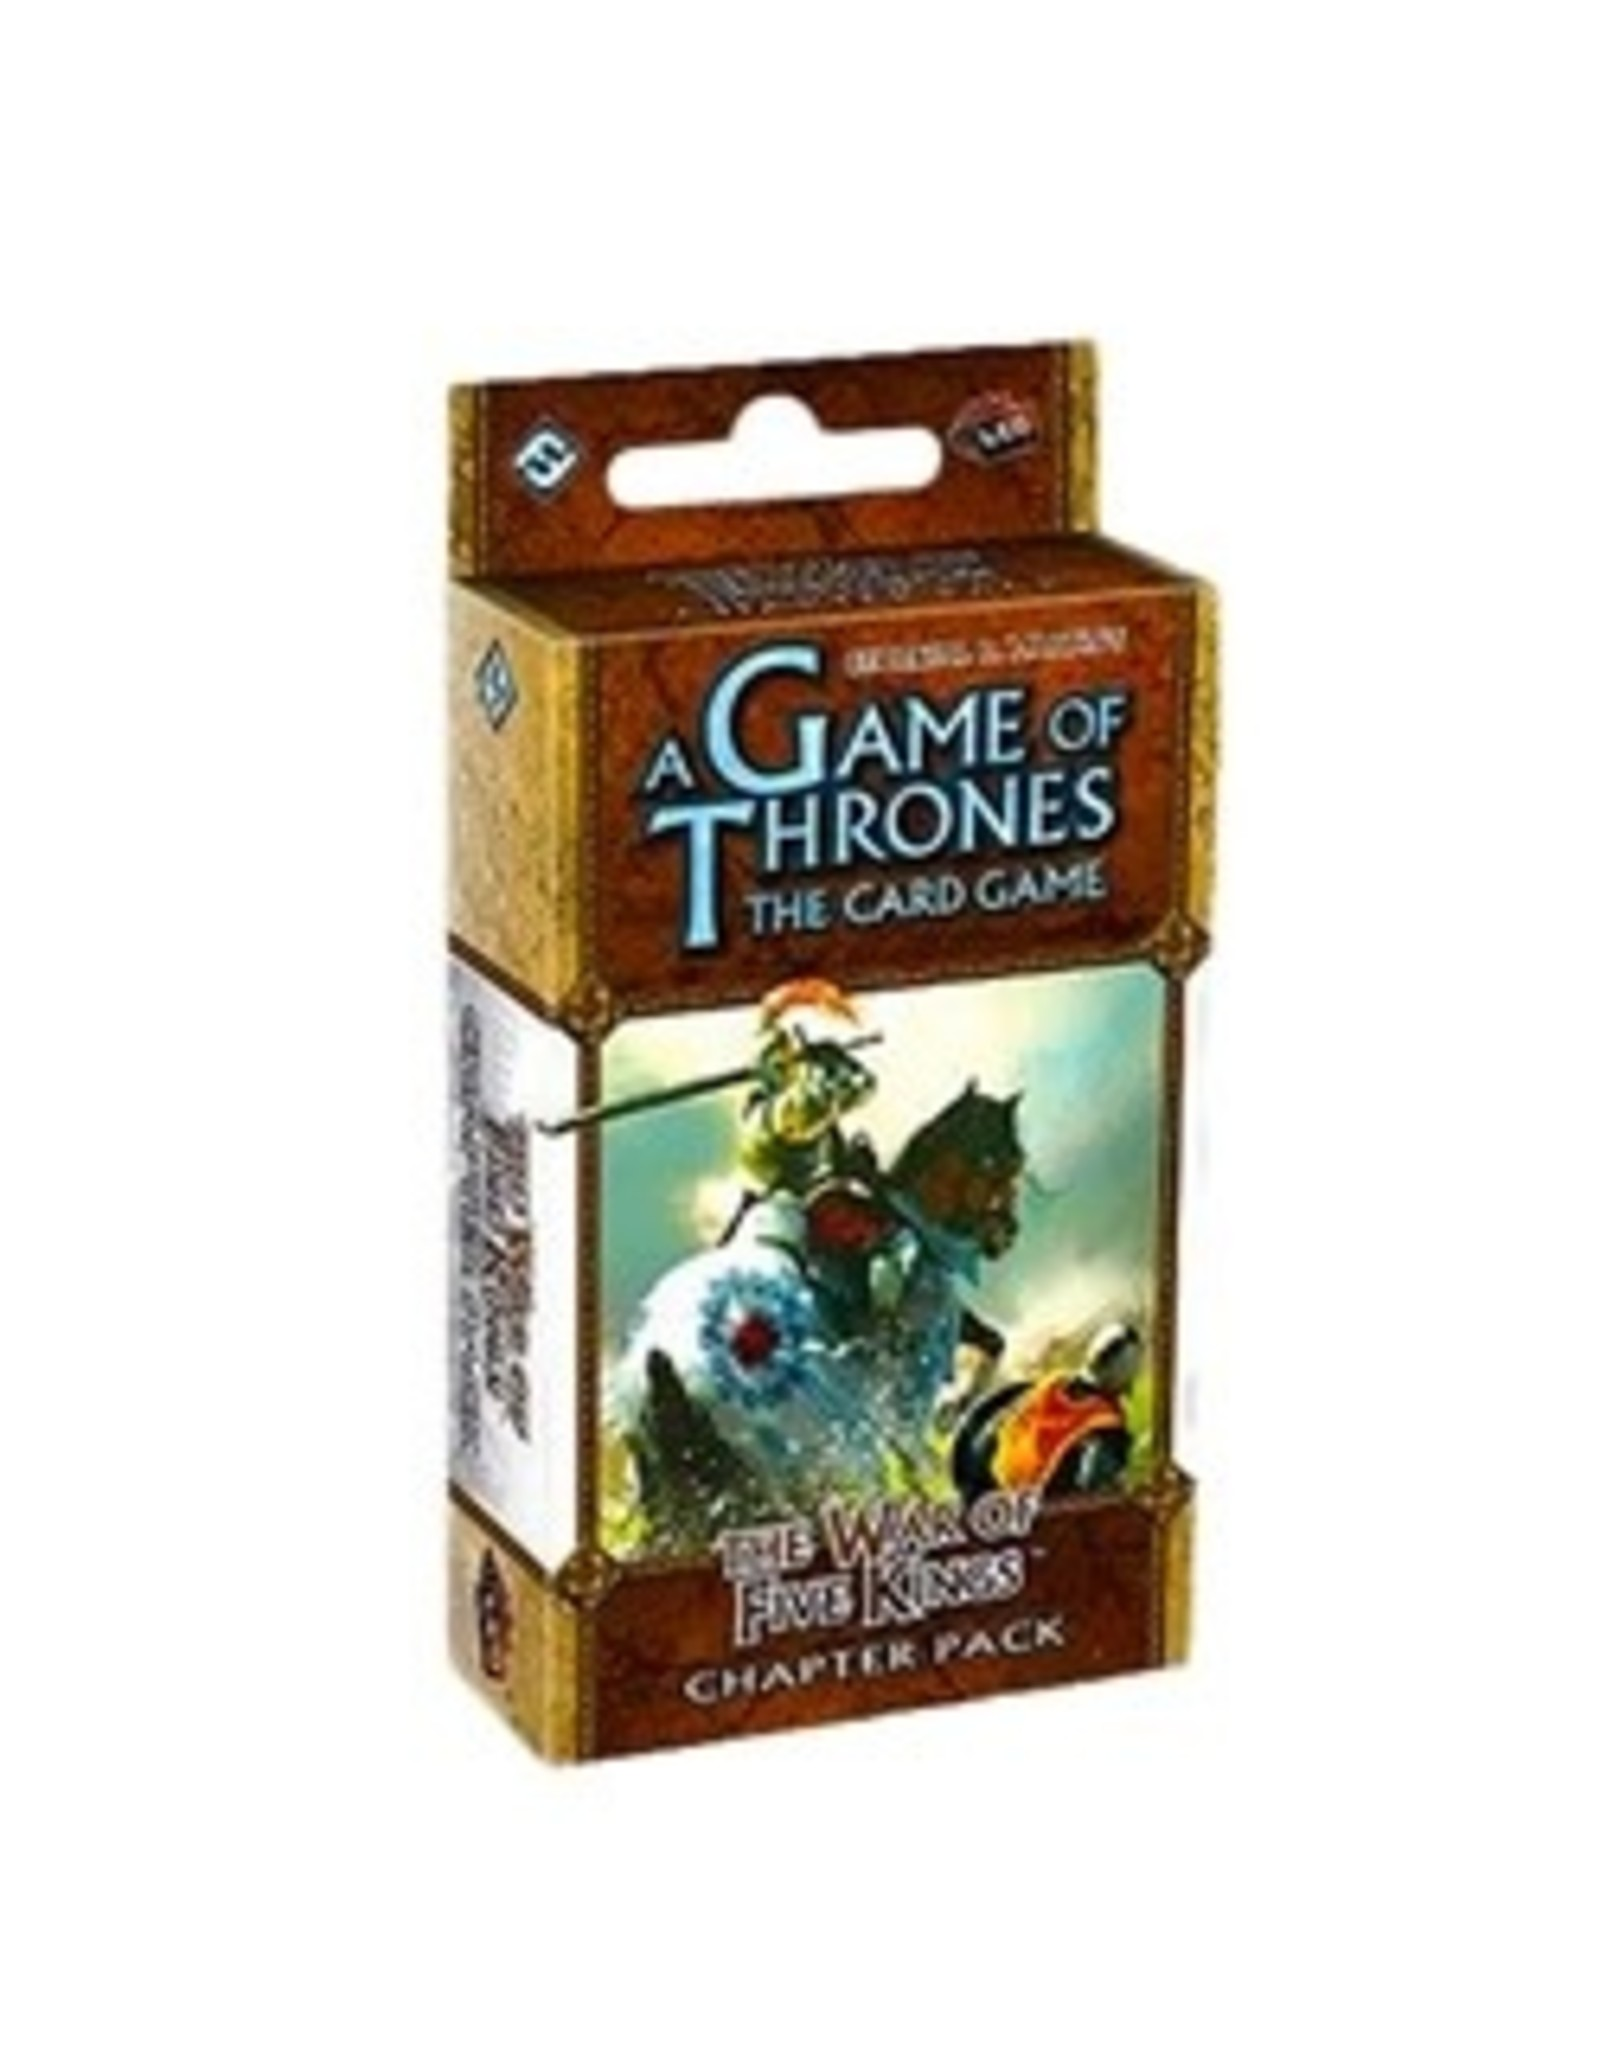 Game of Thrones LCG War of the Five Kings Expansion